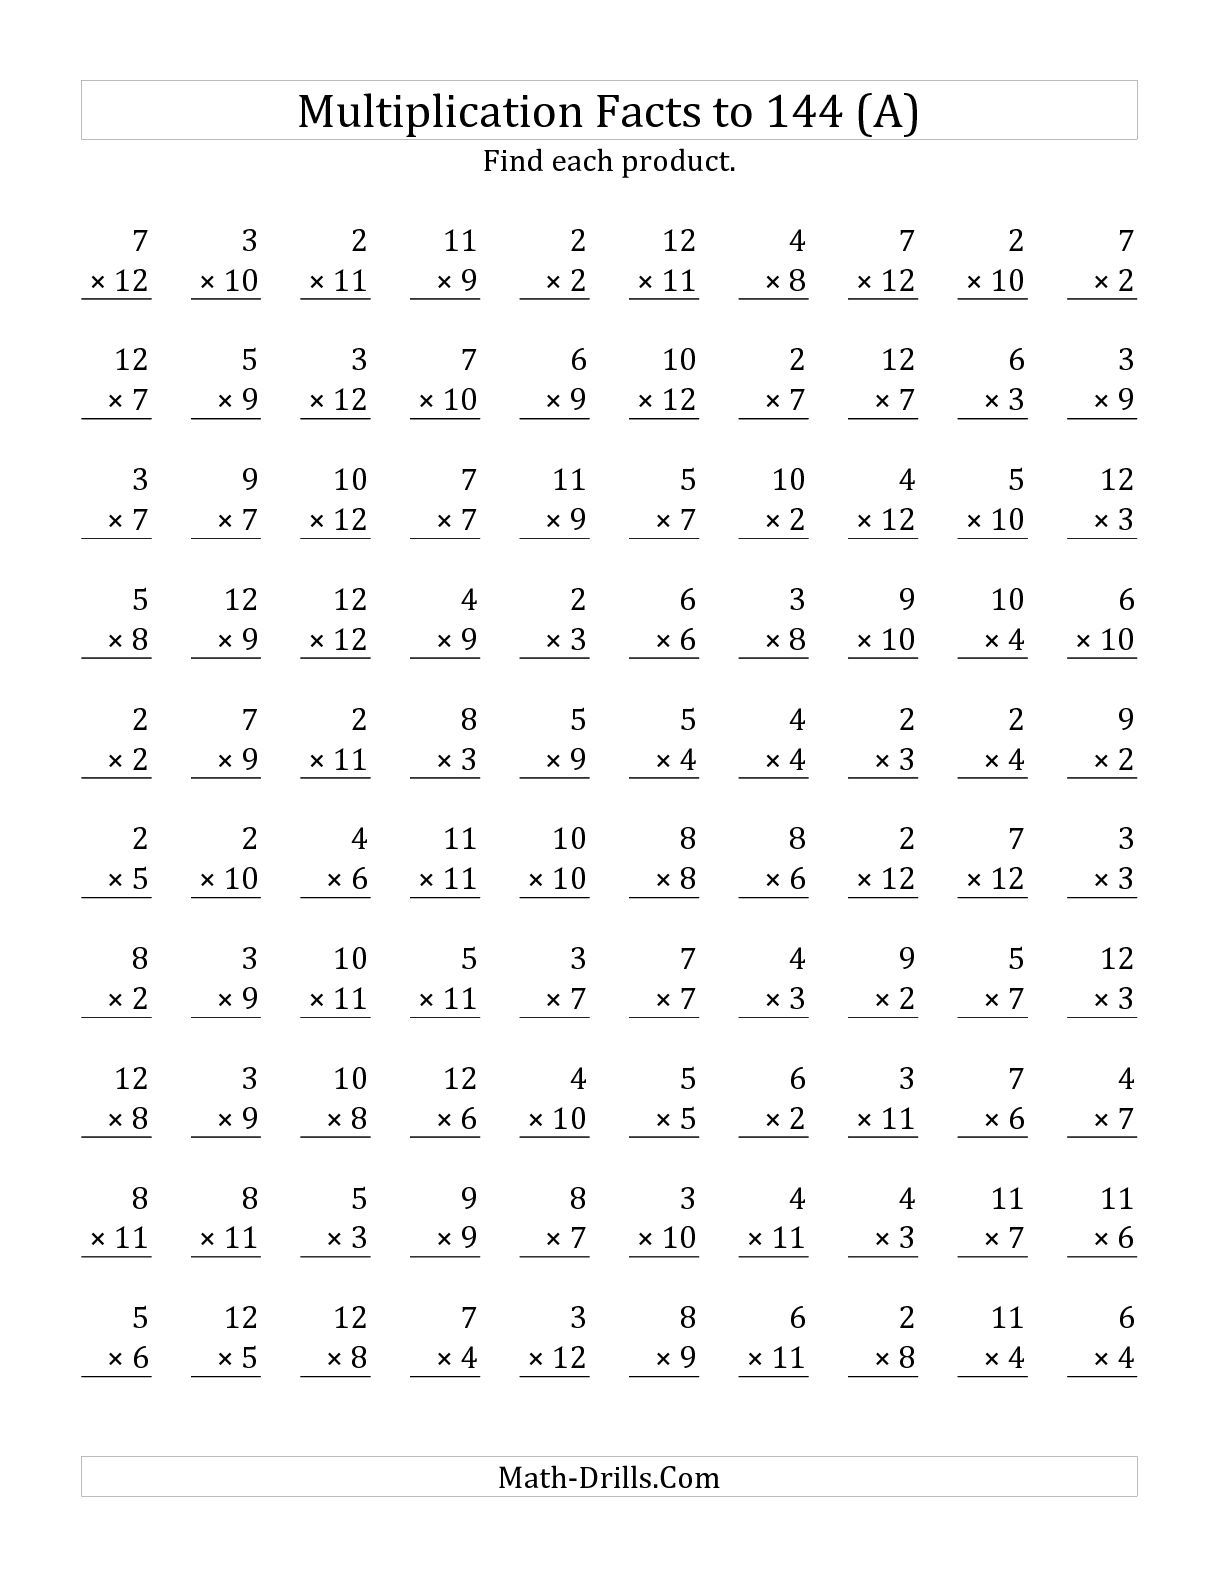 Preview Image Of The Multiplication Facts To 144 No Zeros No Ones A Multiplication Worksheet